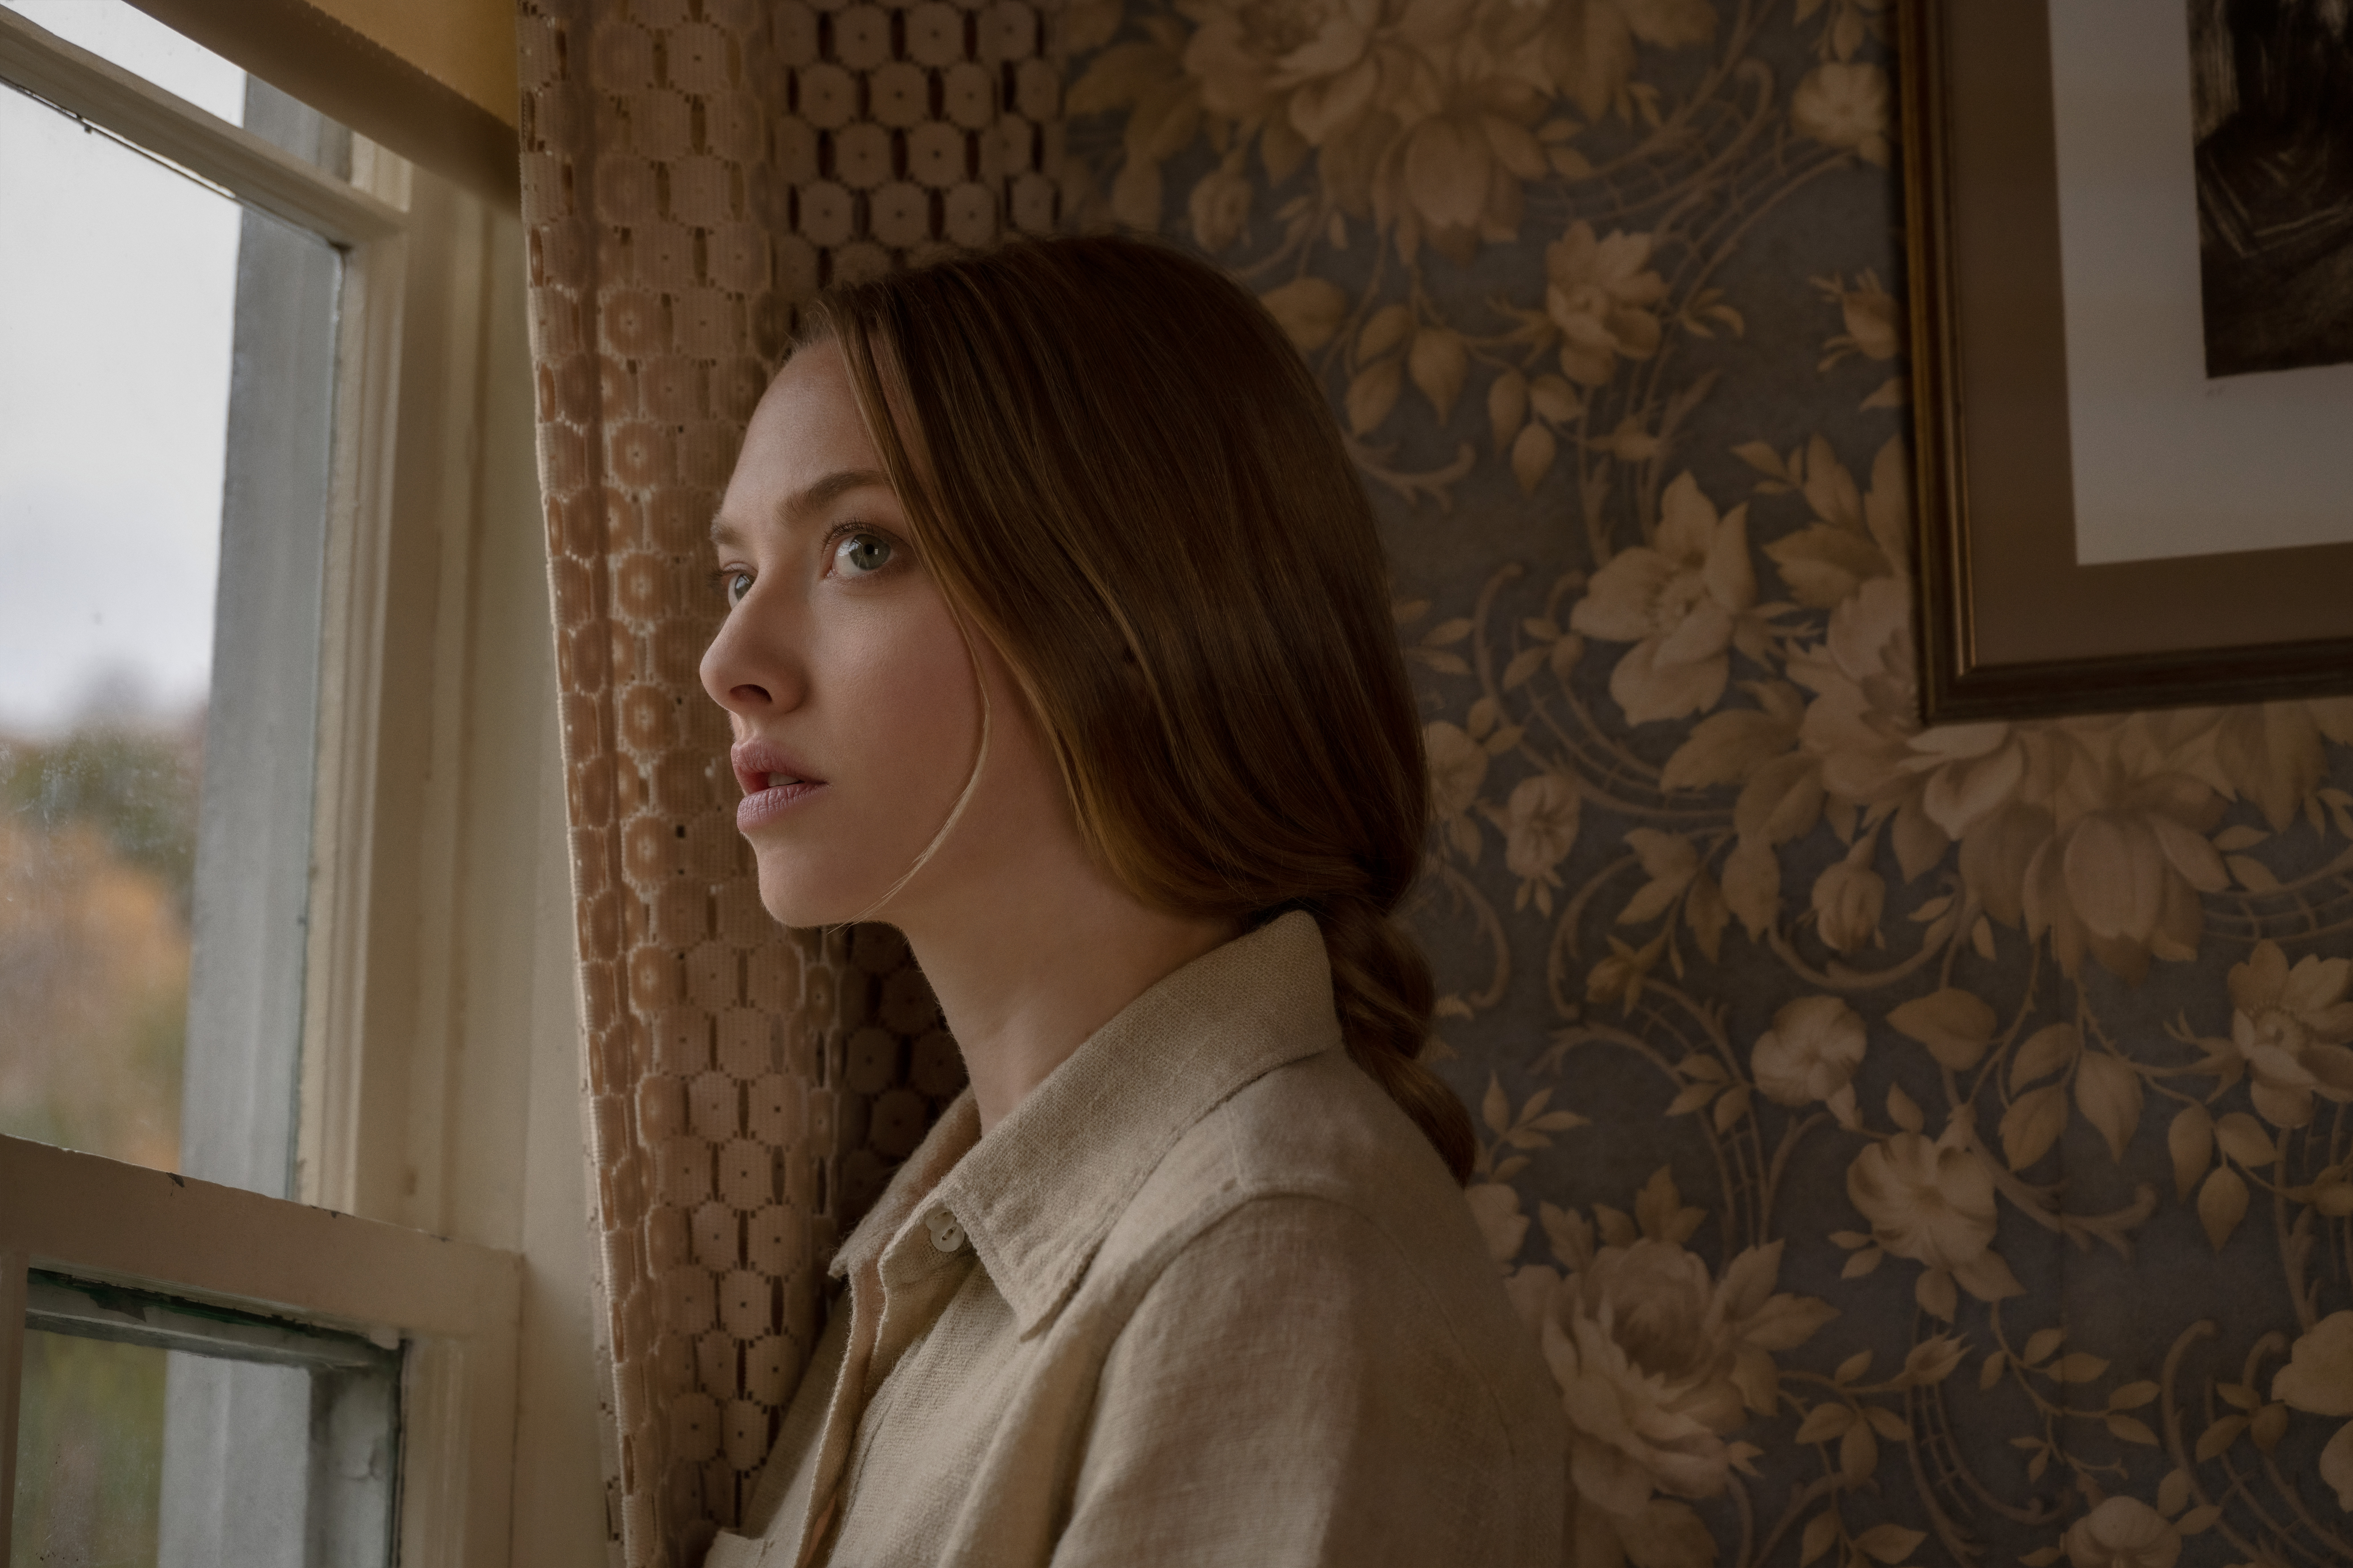 Amanda Seyfried as the increasingly isolated Catherine Clare in 'Things Heard & Seen'